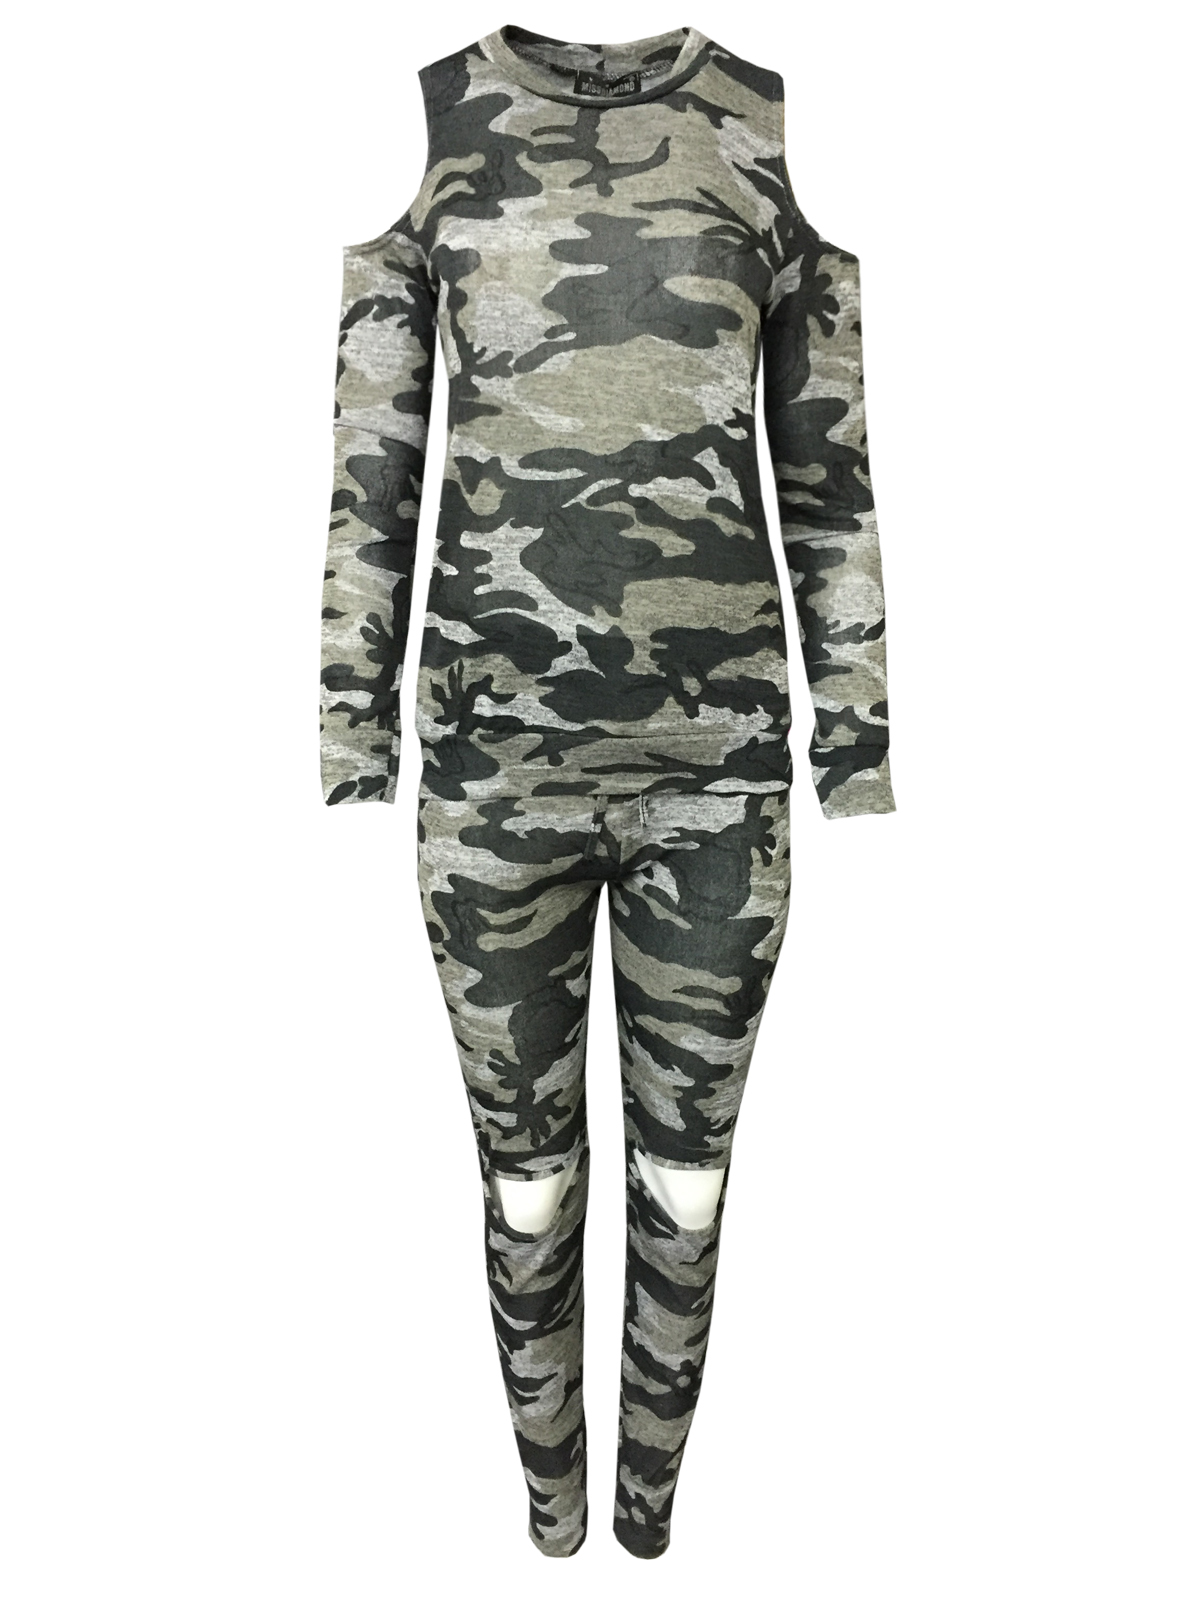 femme co ord militaire ajust e imprim camouflage jogging costume set femmes surv tement ebay. Black Bedroom Furniture Sets. Home Design Ideas